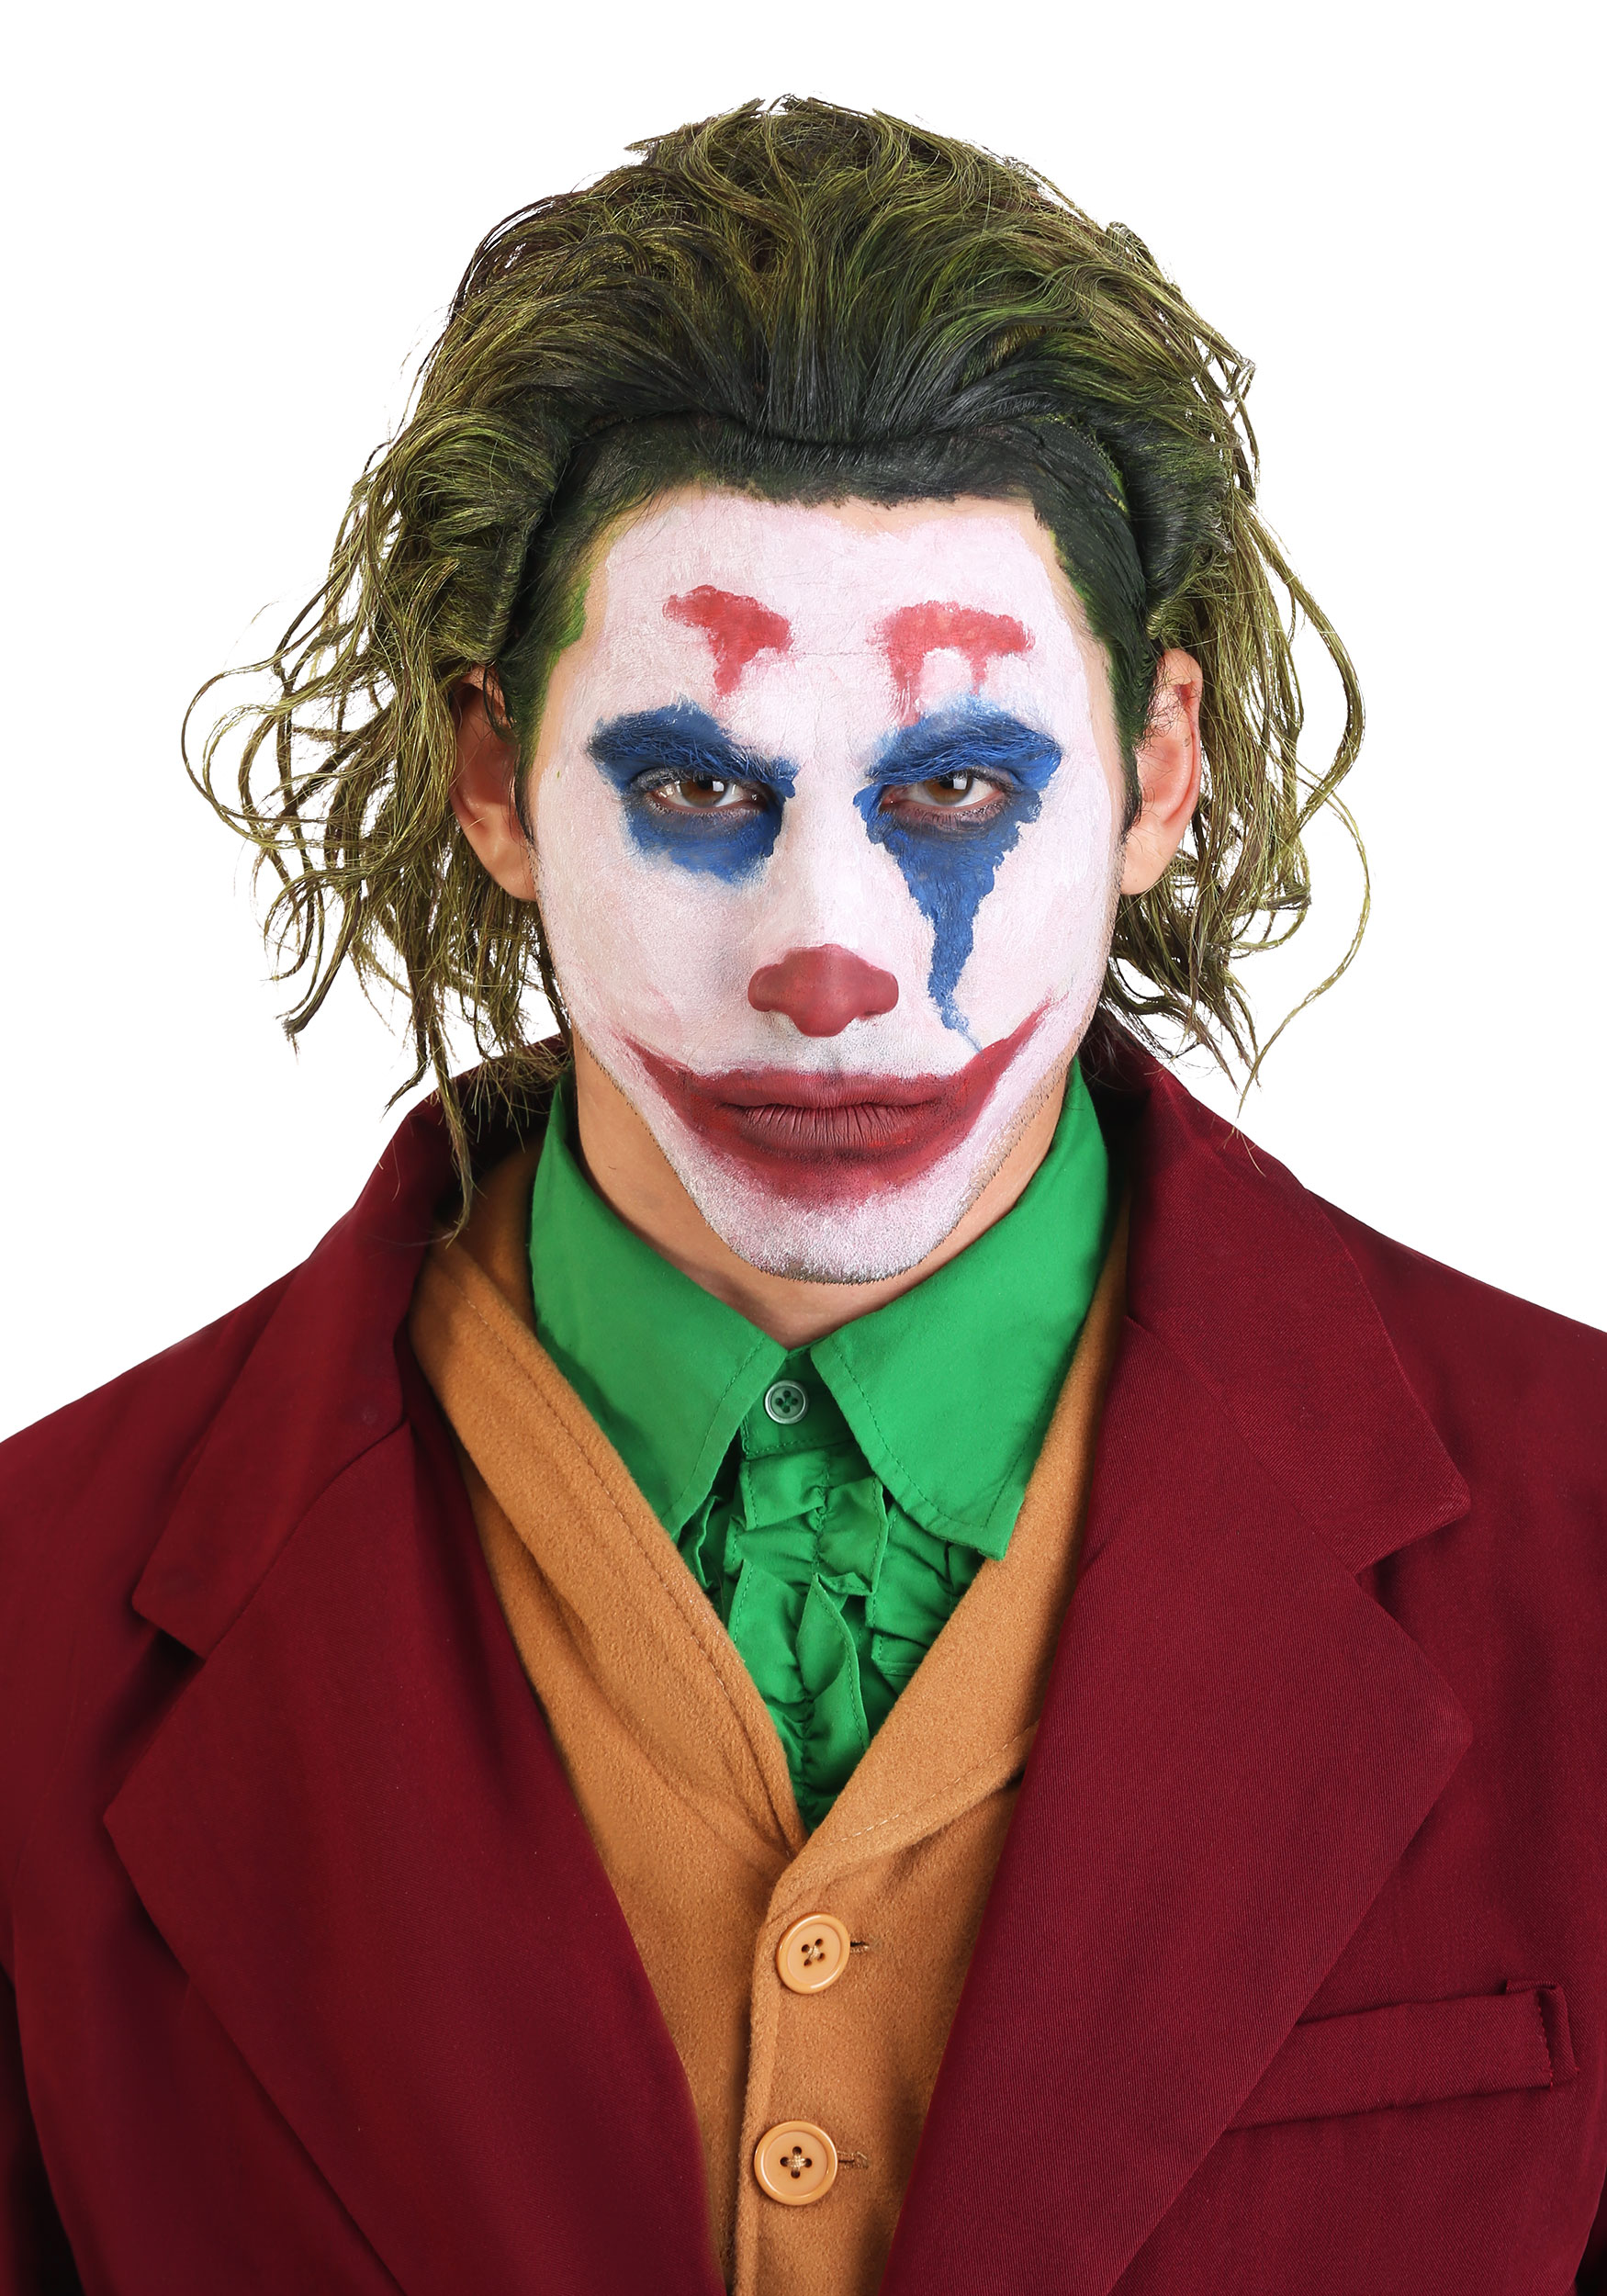 Joaquin Phoenix The Joker Makeup Tutorial - Halloween Costumes Blog